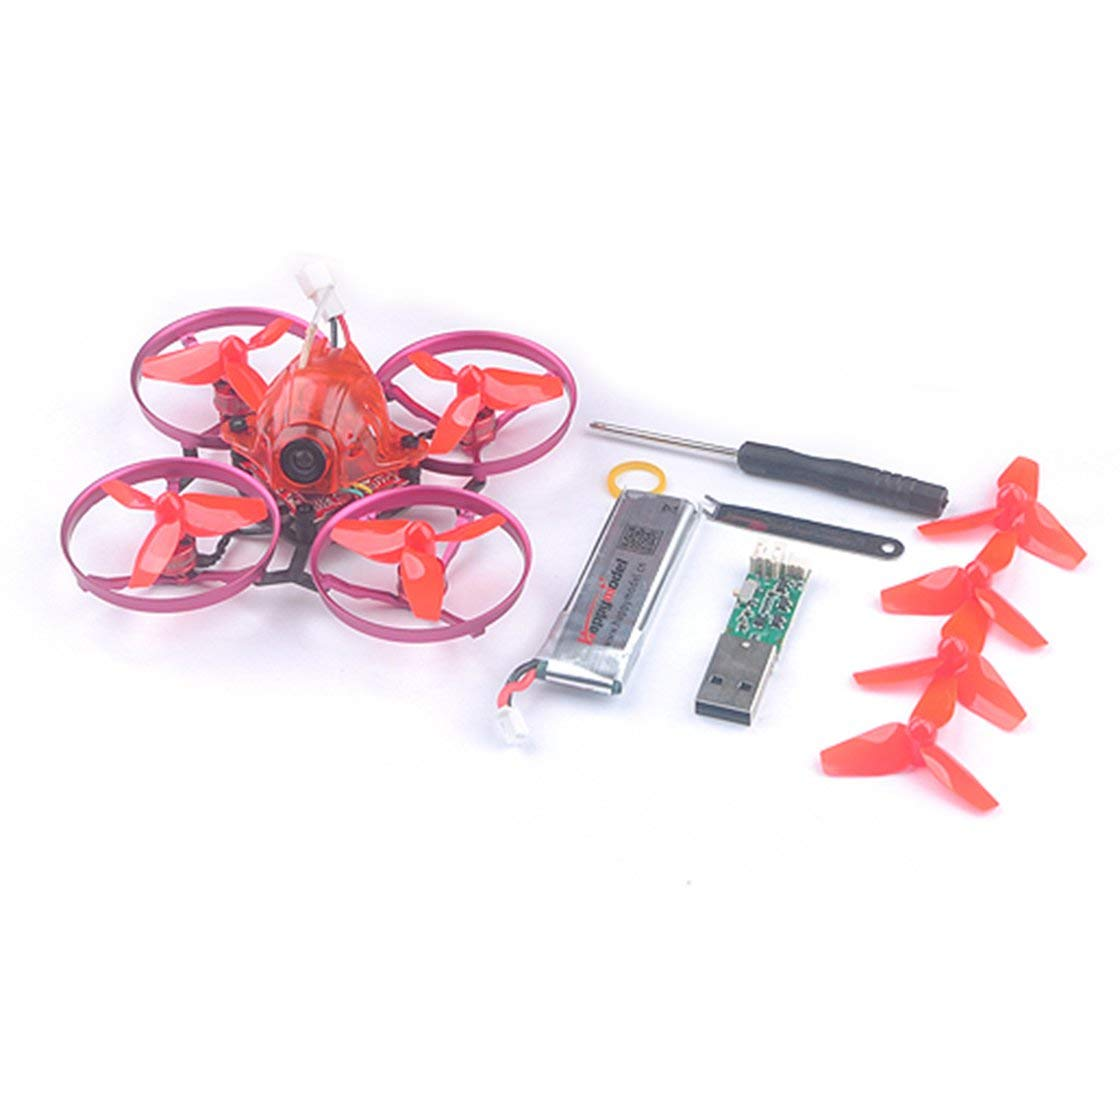 Laurelmartina Happymodel Snapper7 Brushless Whoopi Aircraft BNF Micro 75mm FPV Quadcopter 4in1 Crazybee F3 FC Frsky RX 700TVL Cámara VTX